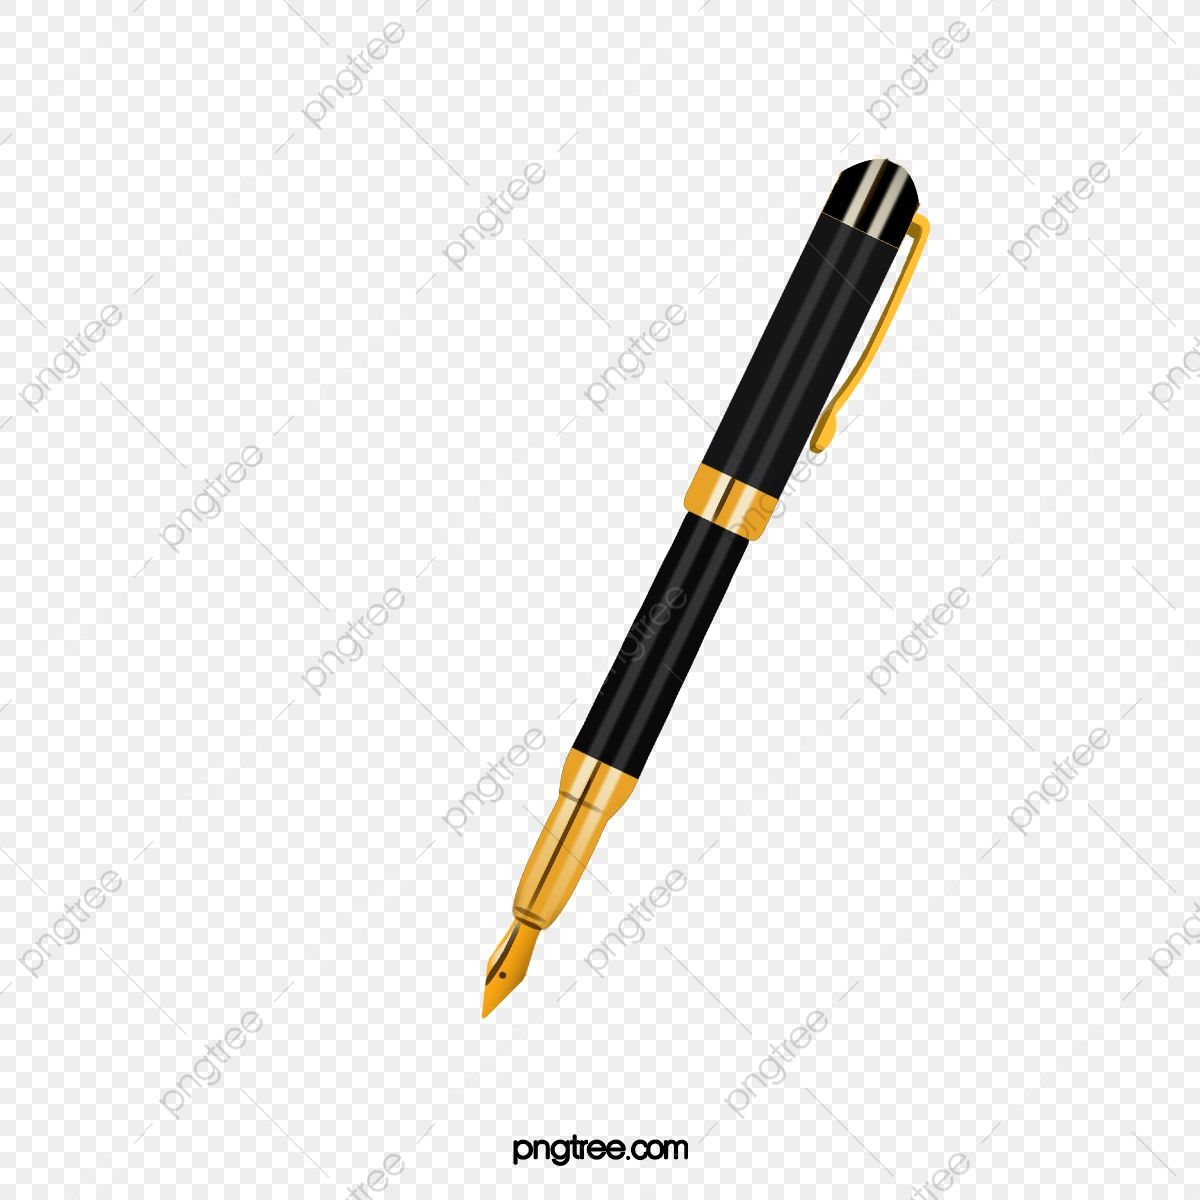 Pen Stationery Png Transparent Clipart Image And Psd File For Free Download In 2021 Pen Clip Art Hand Holding Something